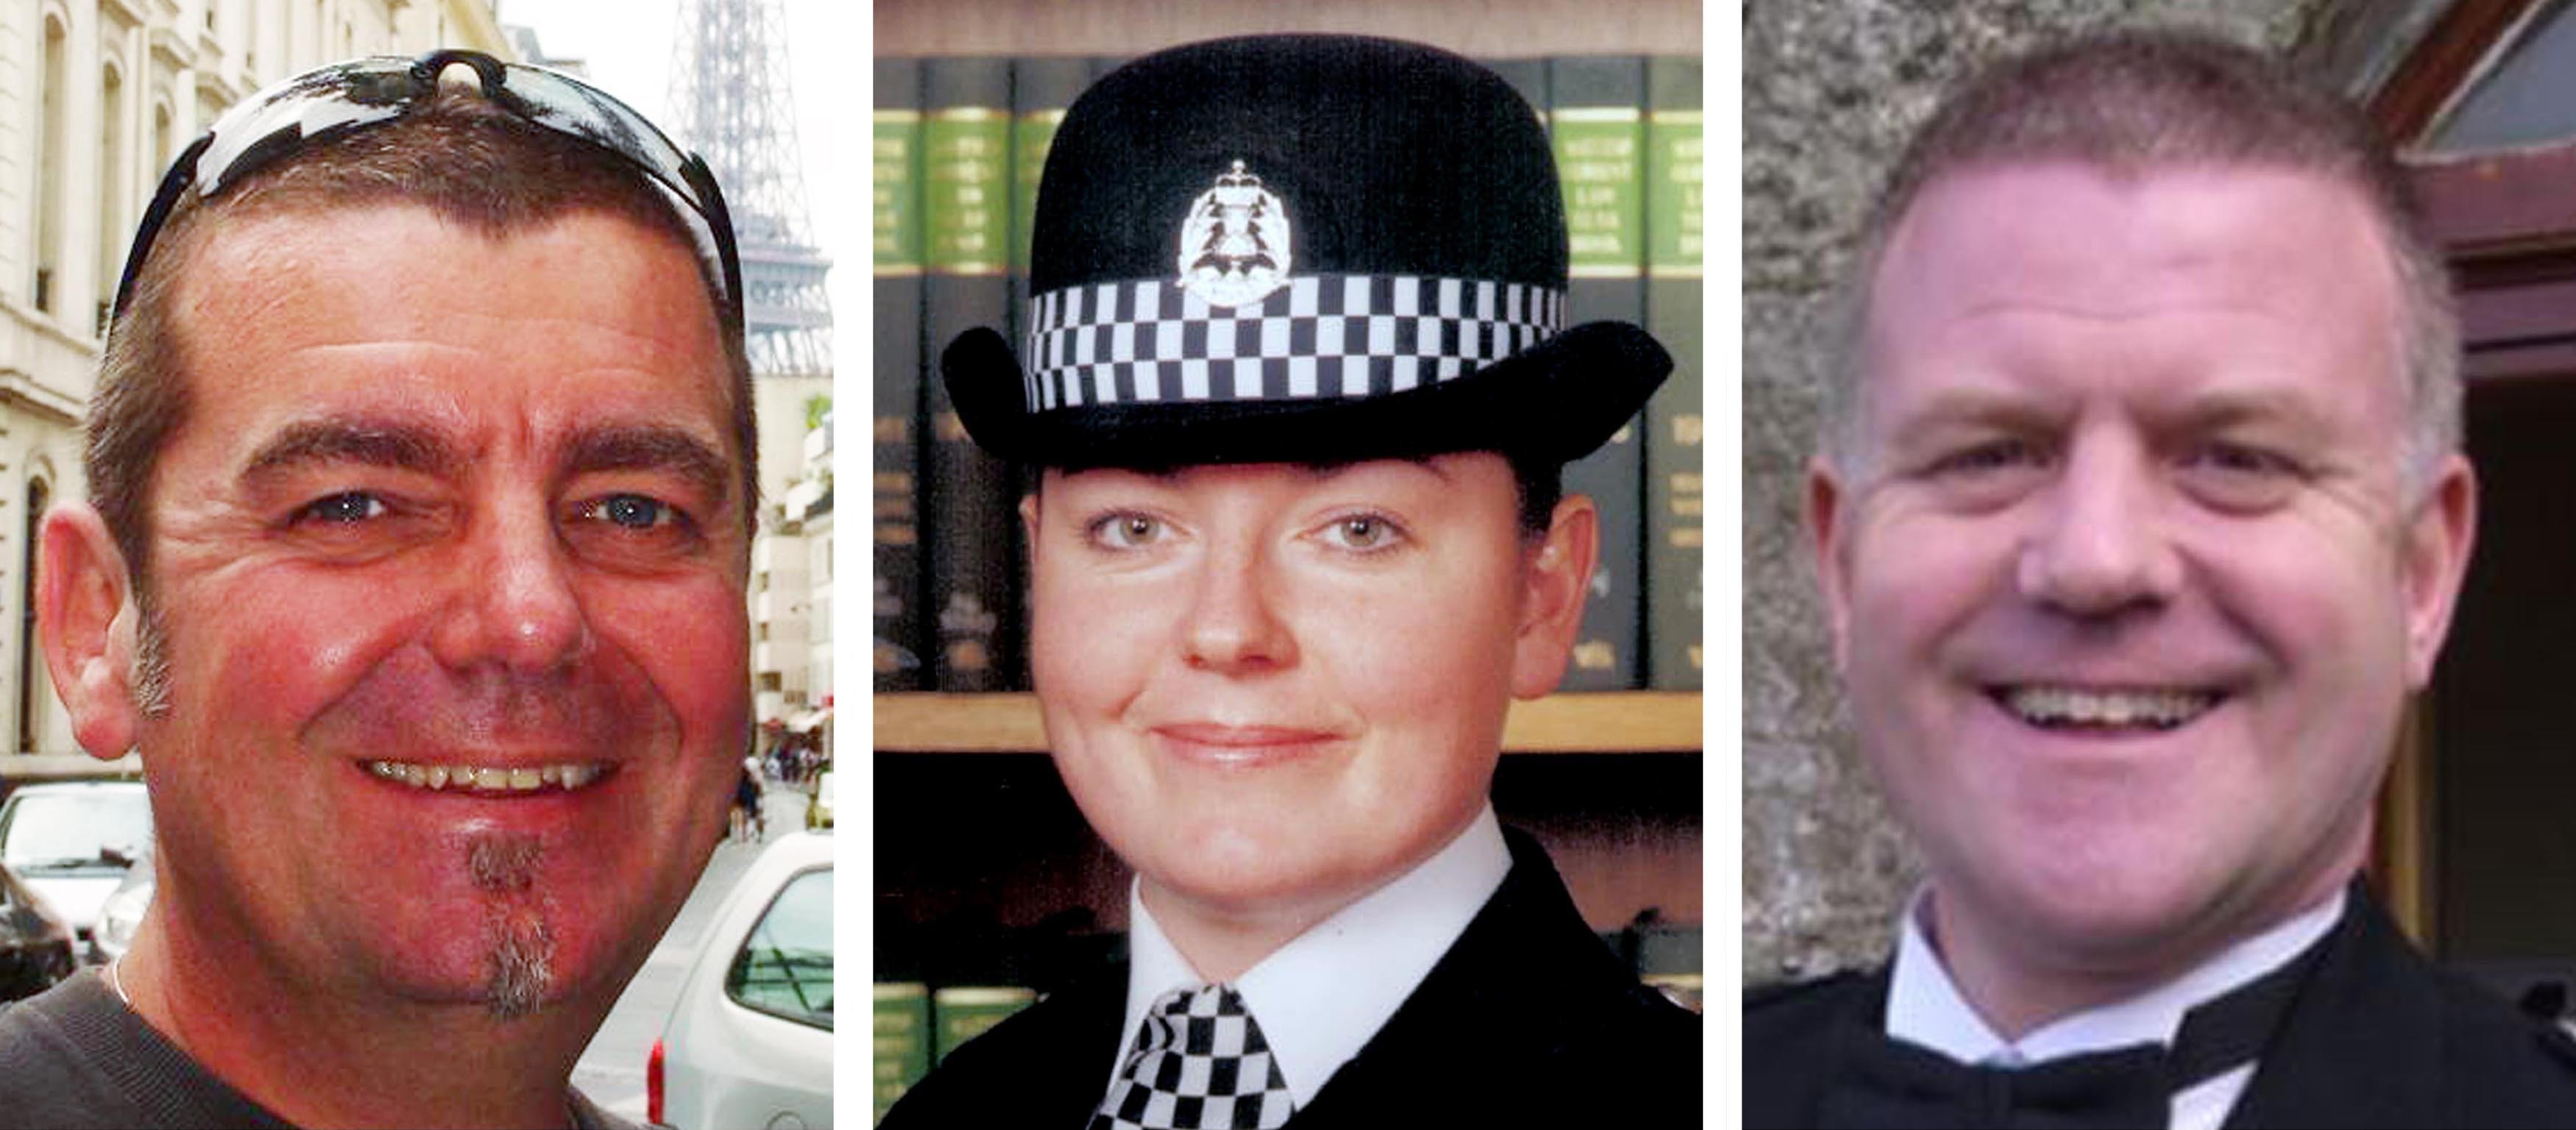 "(Left to right) helicopter pilot David Traill with police officers Kirsty Nelis and Tony Collins. The widower of a police officer killed after a force helicopter crashed into the Clutha pub in Glasgow has said he is ""deeply concerned and frustrated"" by the outcome of an inquiry."